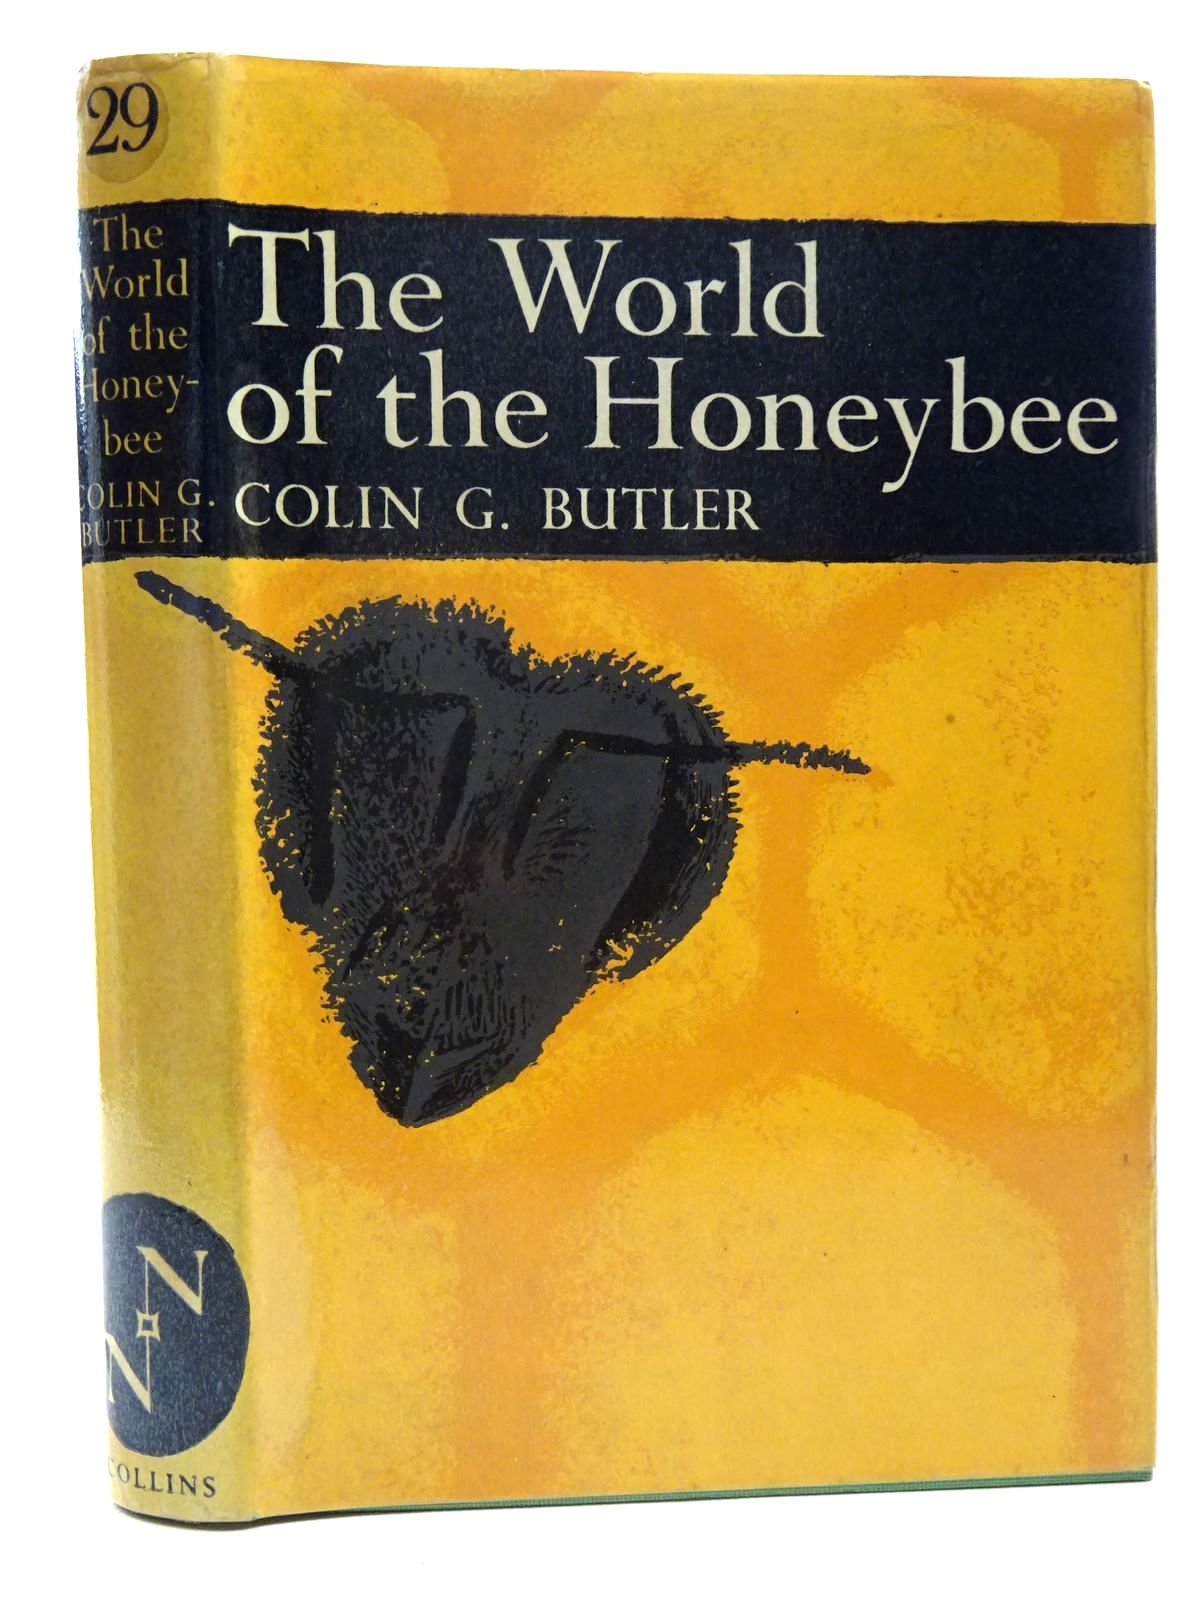 Photo of THE WORLD OF THE HONEYBEE (NN 29)